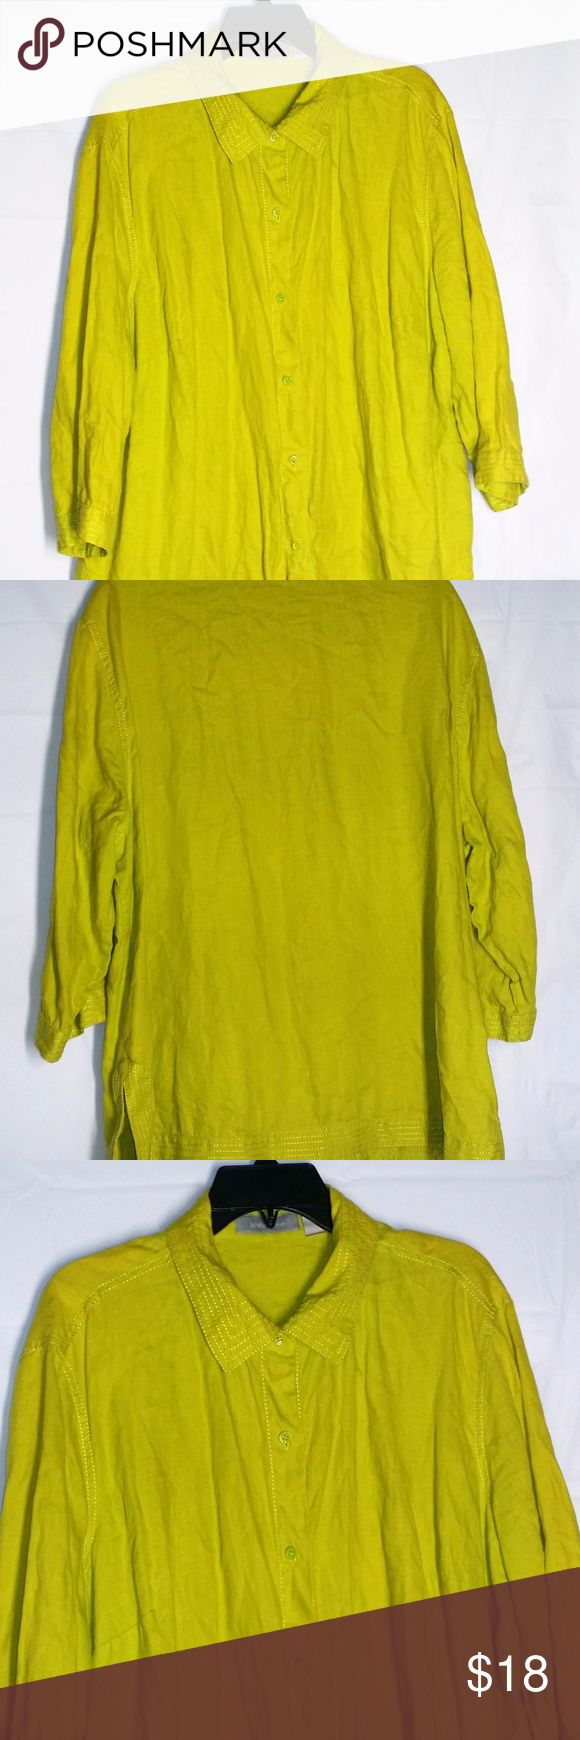 """Liz Claiborne Blouse 2X Linen Button Front Top Liz Claiborne 2X Linen Button Front Blouse Tunic Lime Green Top Split Hem  Gently used condition Machine wash cold & tumble dry low 3/4 sleeves Split hem at hips Approx bust 54"""" and length 29"""" Linen Top stitched 3/4 sleeves Liz Claiborne Tops Blouses"""